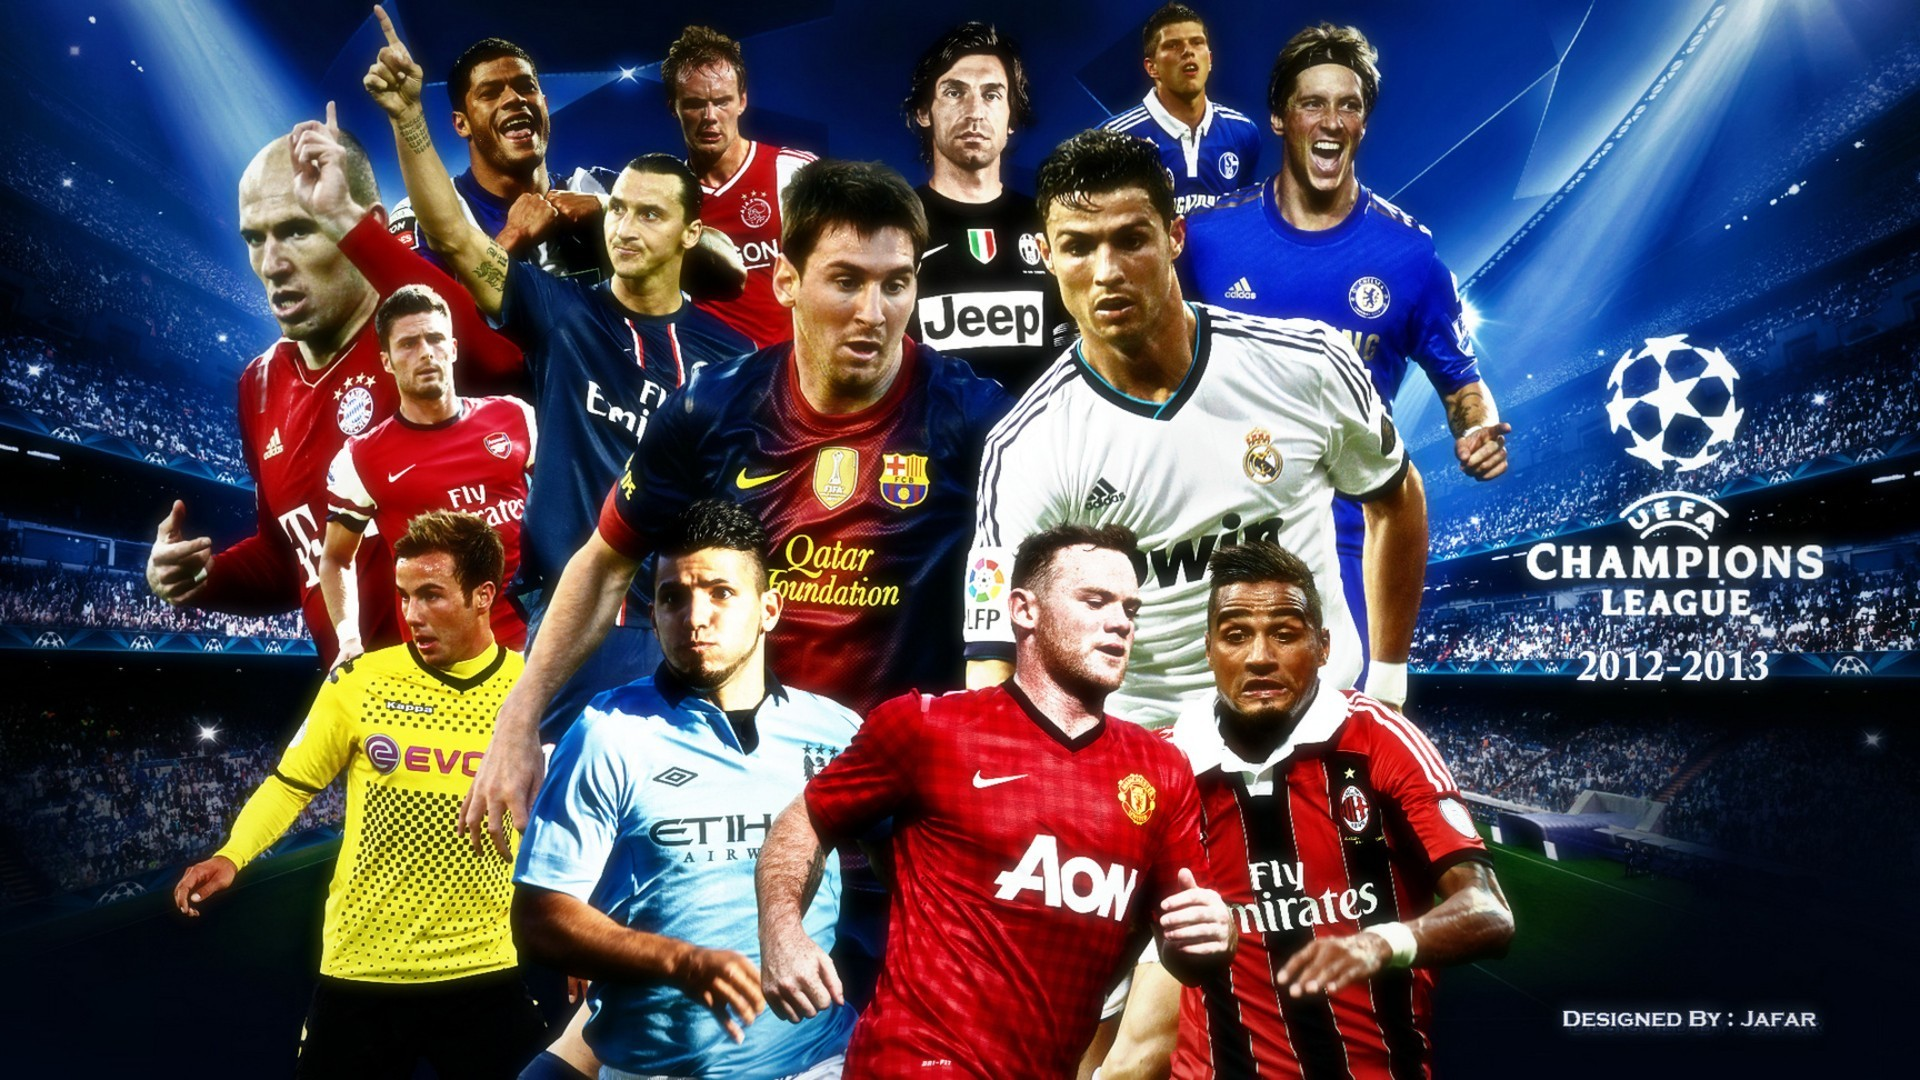 Res: 1920x1080, soccer · Champions League · Uefa Champions League · football · football  players